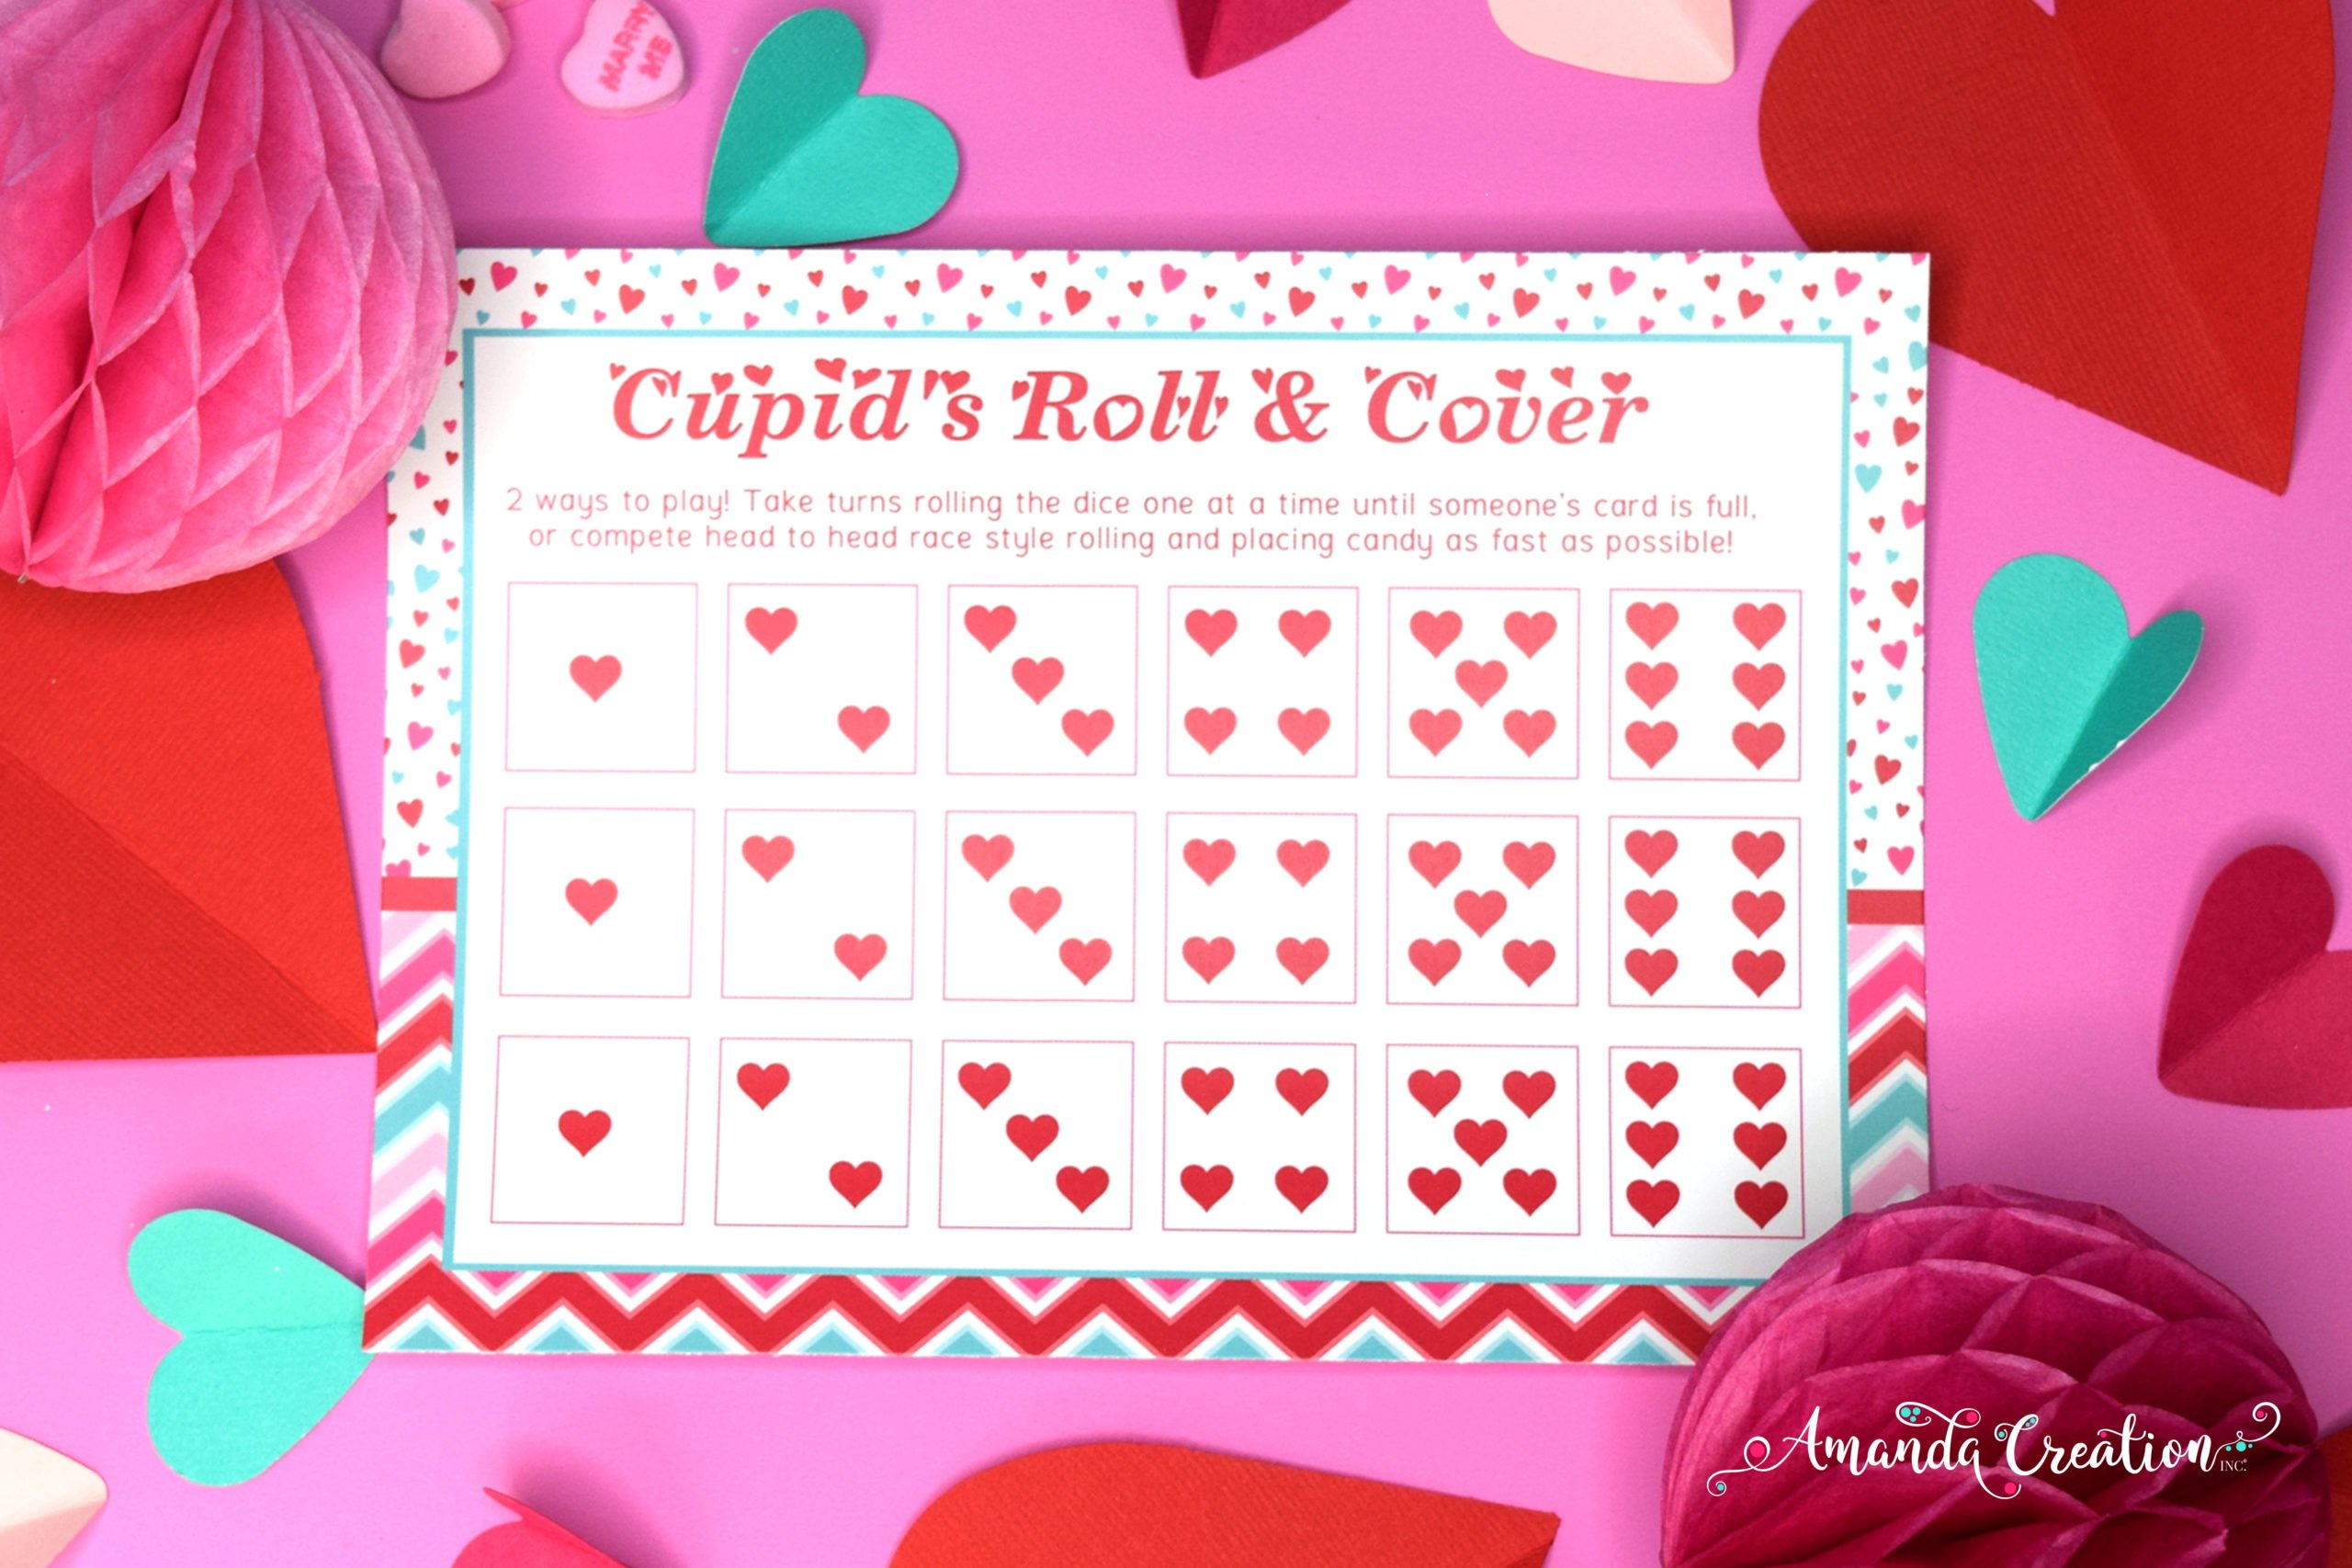 Cupid's Roll & Cover Valentine's Day Game